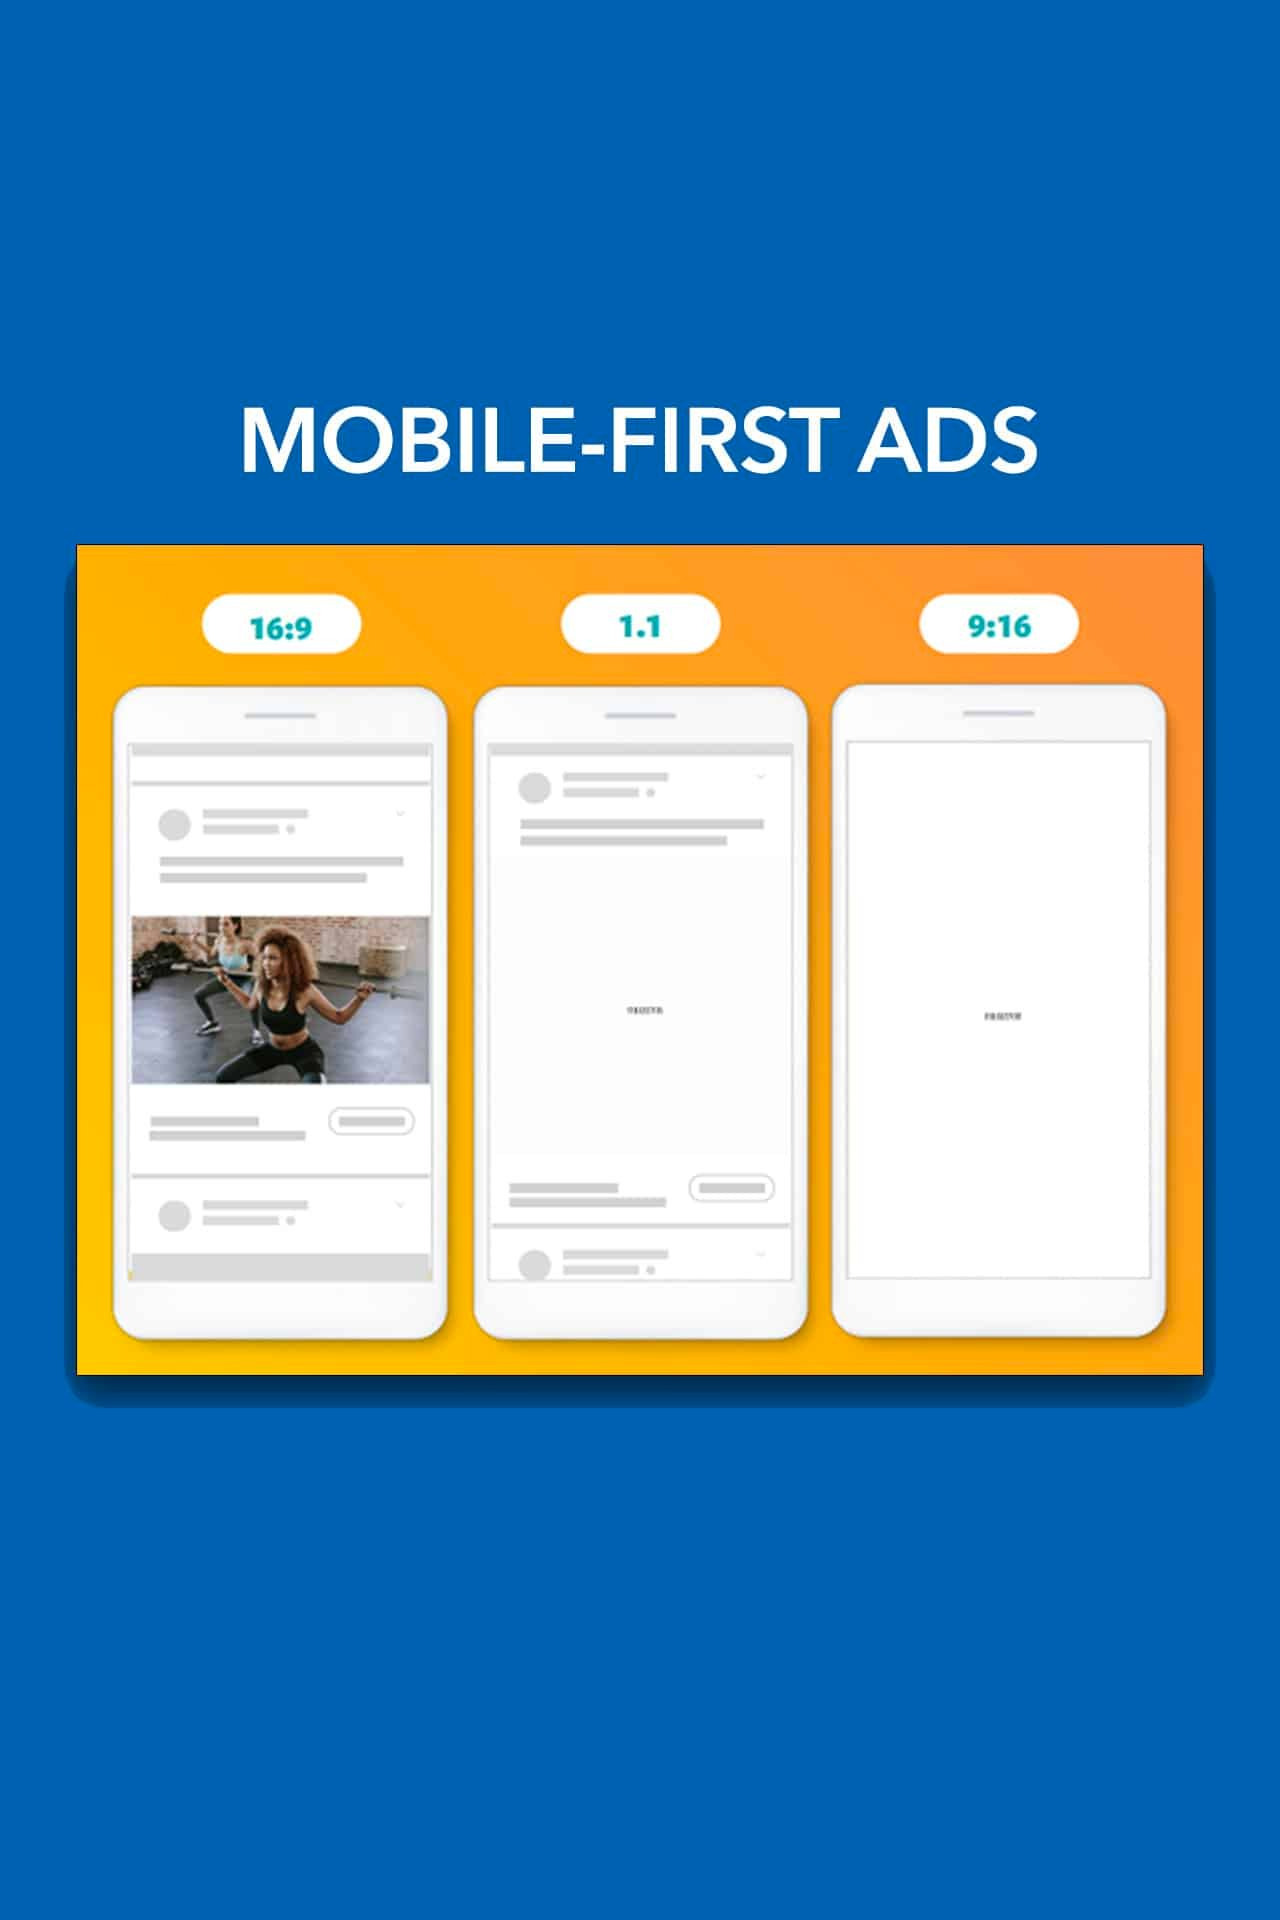 Facebook ads mobile-first